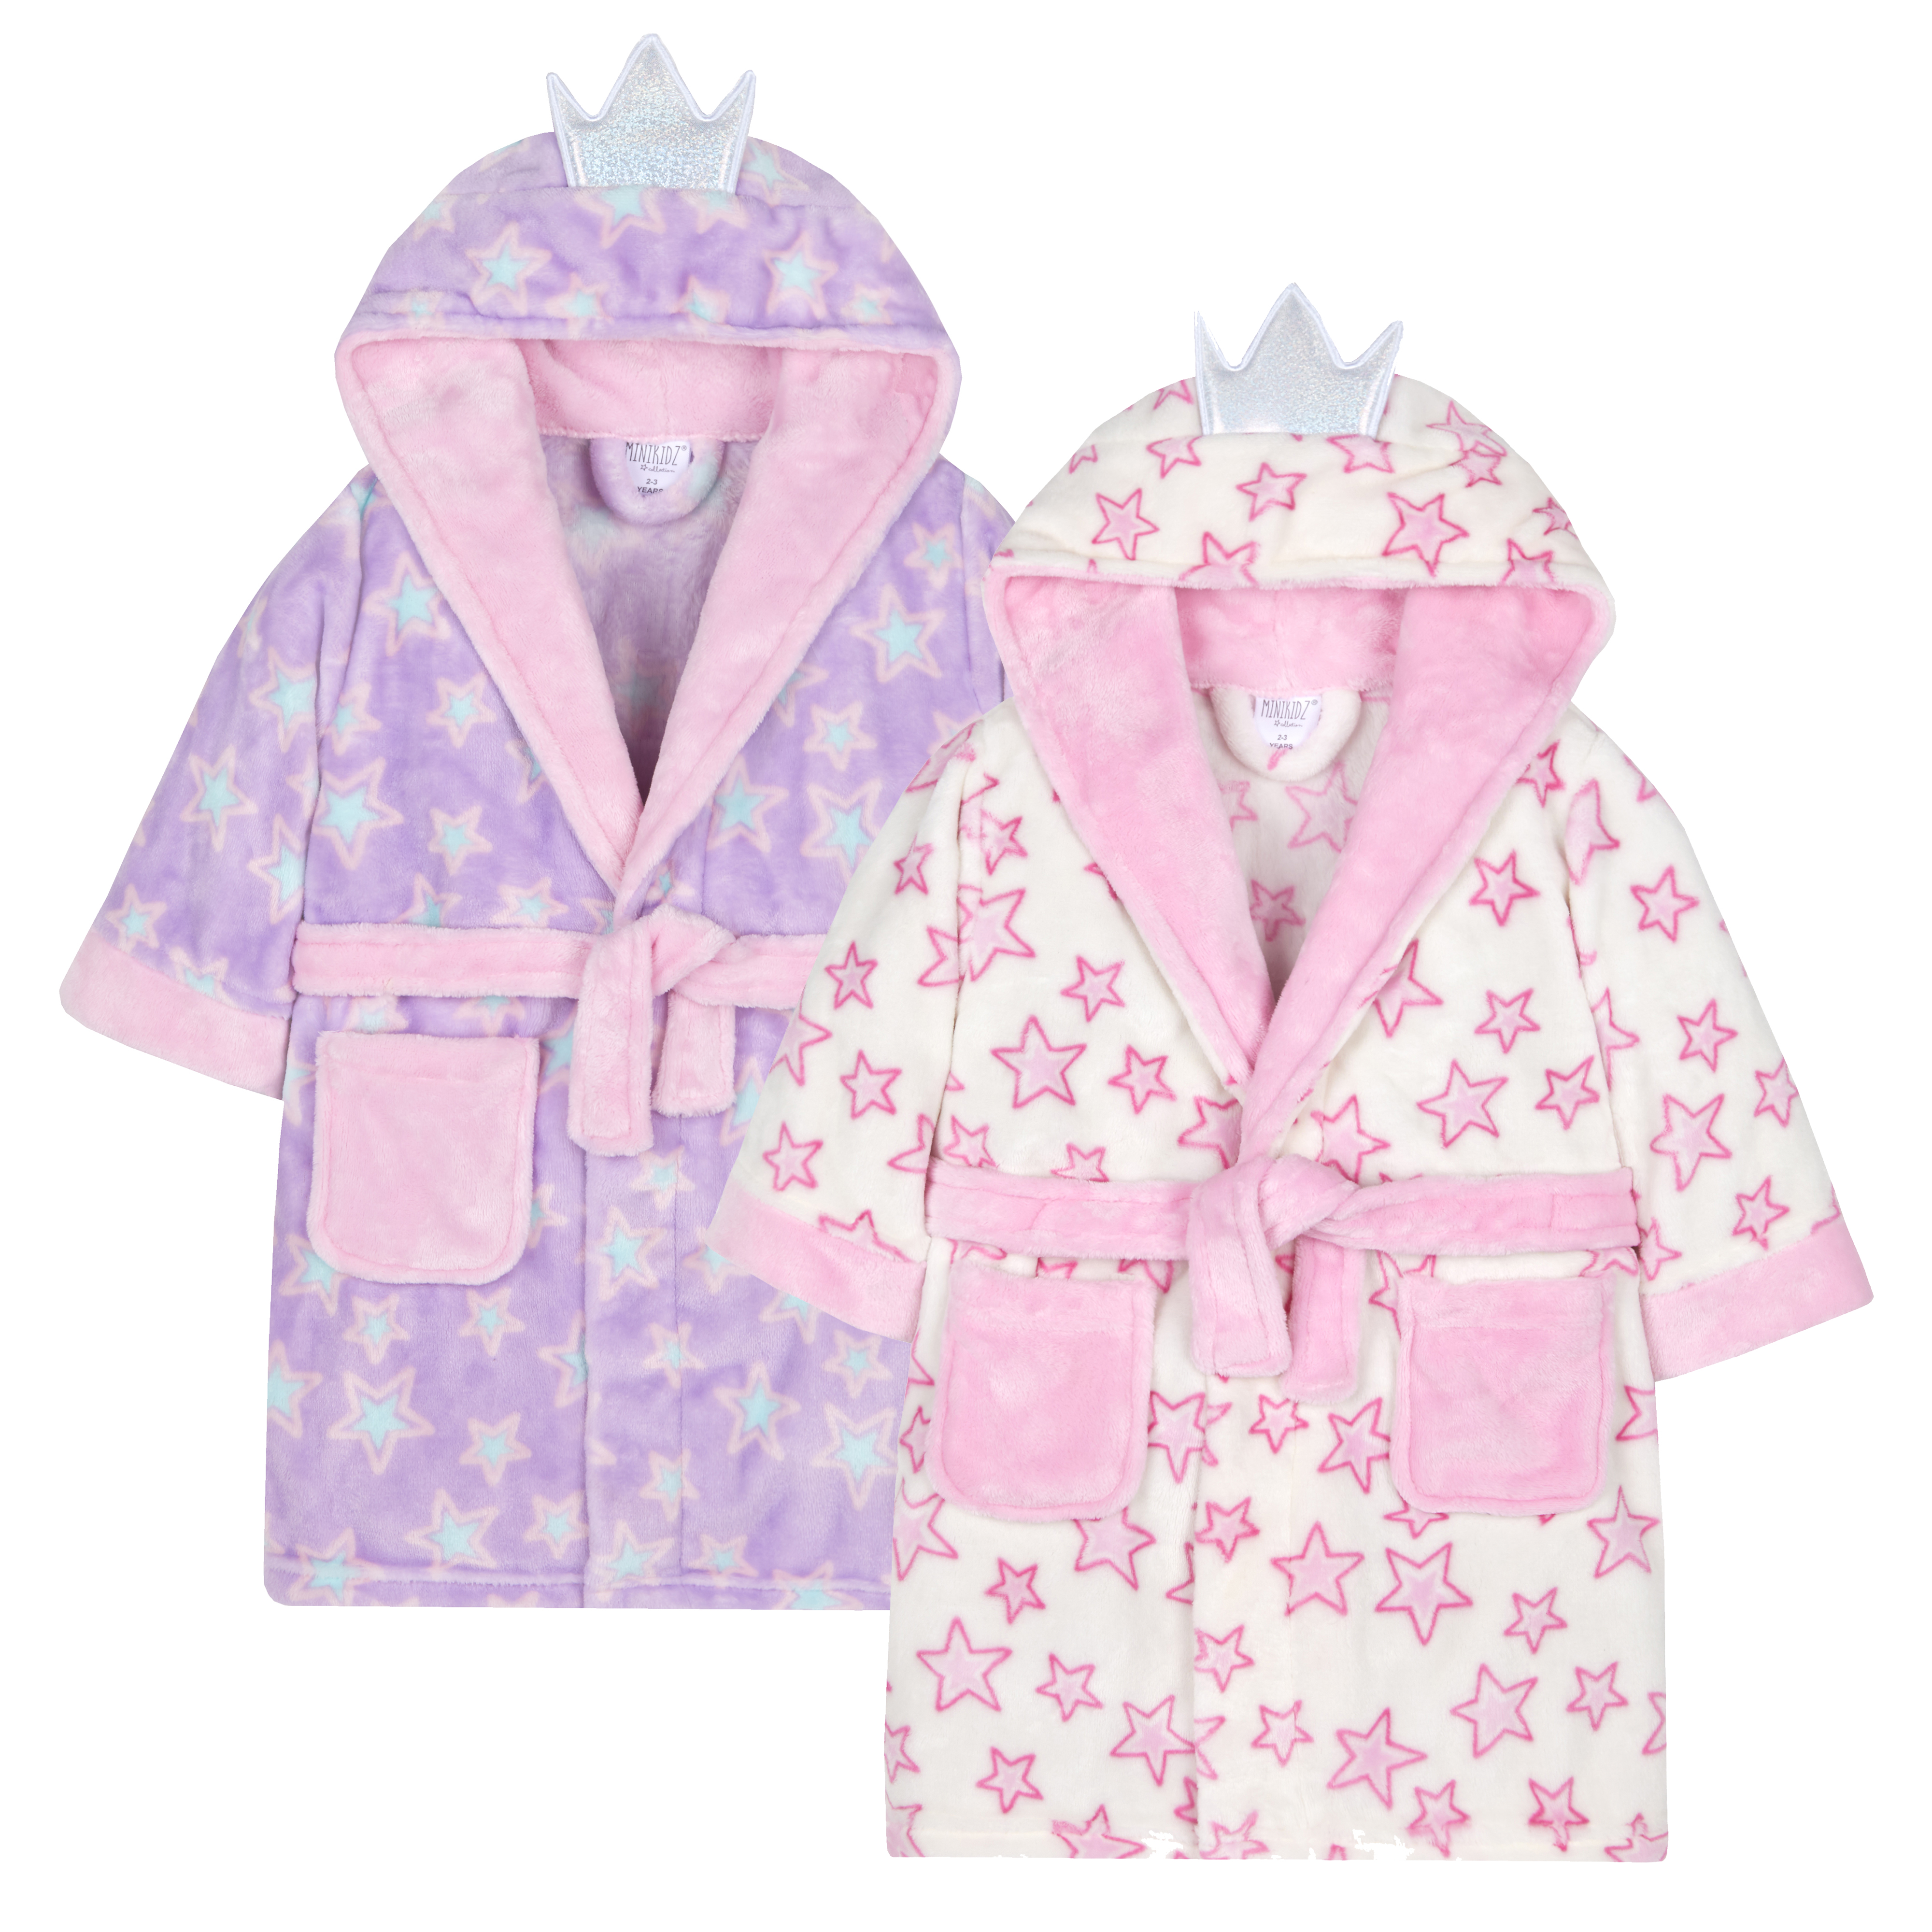 bd639664ac Details about Girls Fairy Princess Dressing Gown Robe Plush Fleece Soft  Toddler Hooded Novelty